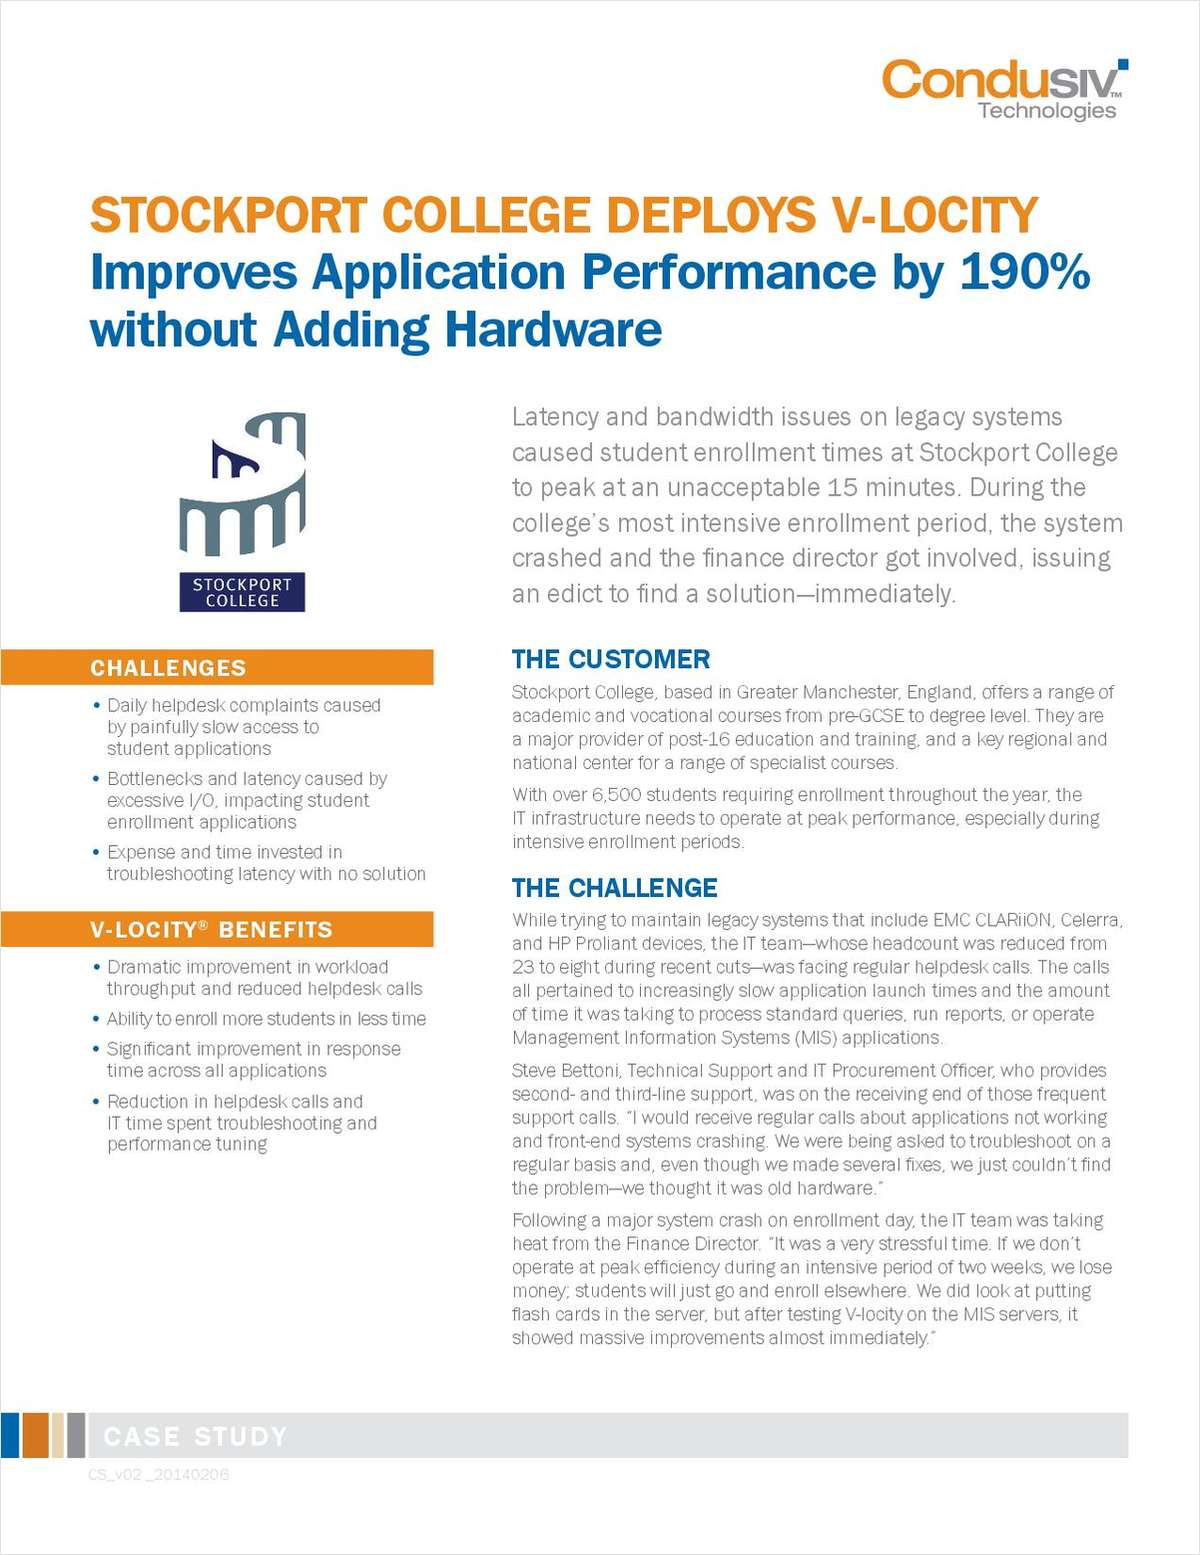 Stockport College Deploys V-locity and Improves Application Performance by 190% without Adding Hardware